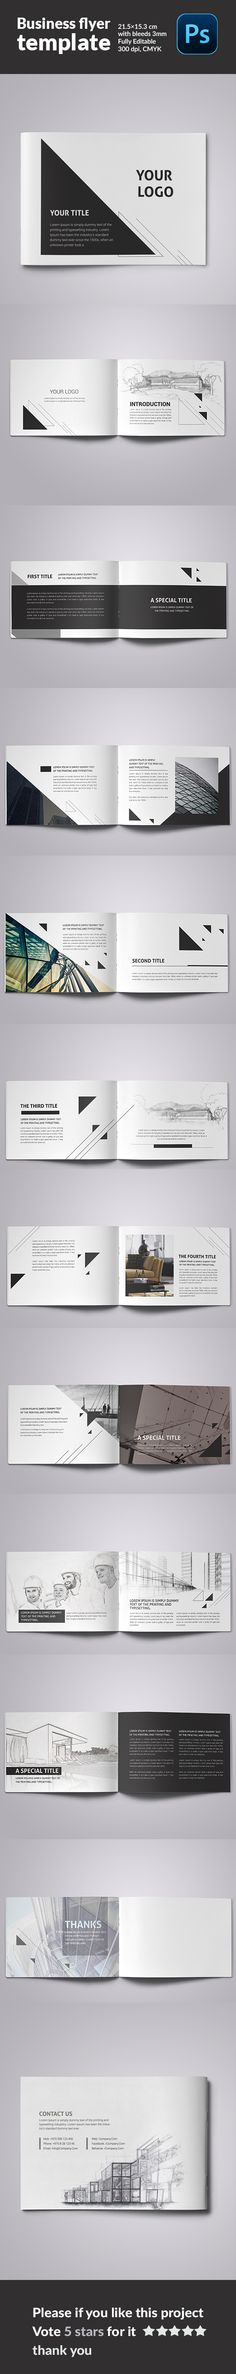 Minimalfolio #6 is a horizontal photography portfolio A4 brochure - pull tab flyer template